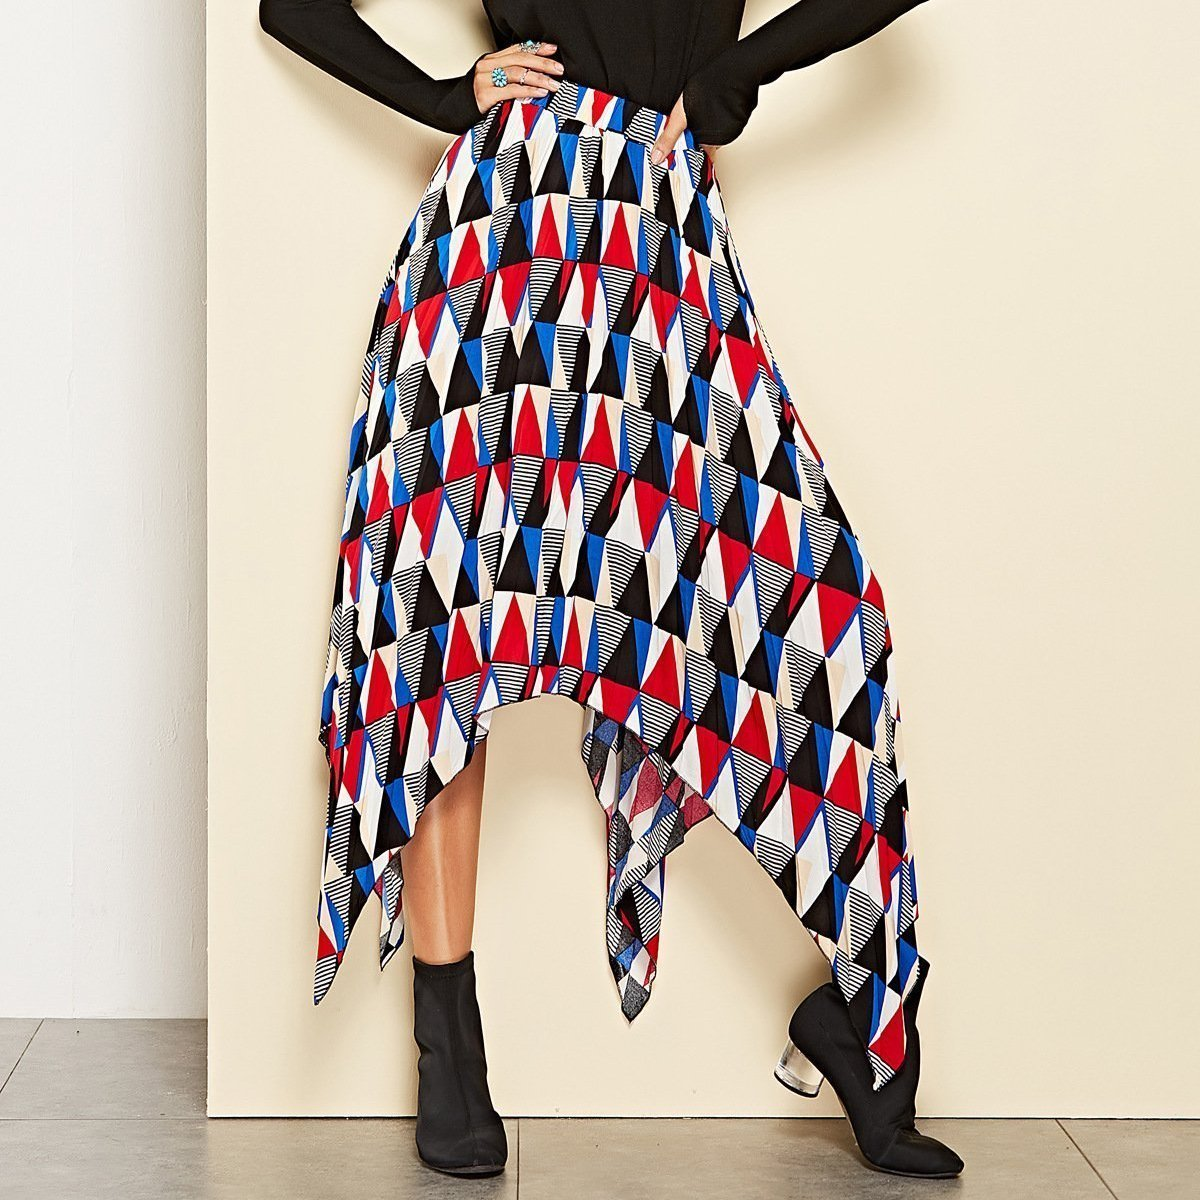 Stylish Rubber Geometric Pattern Irregular Skirt